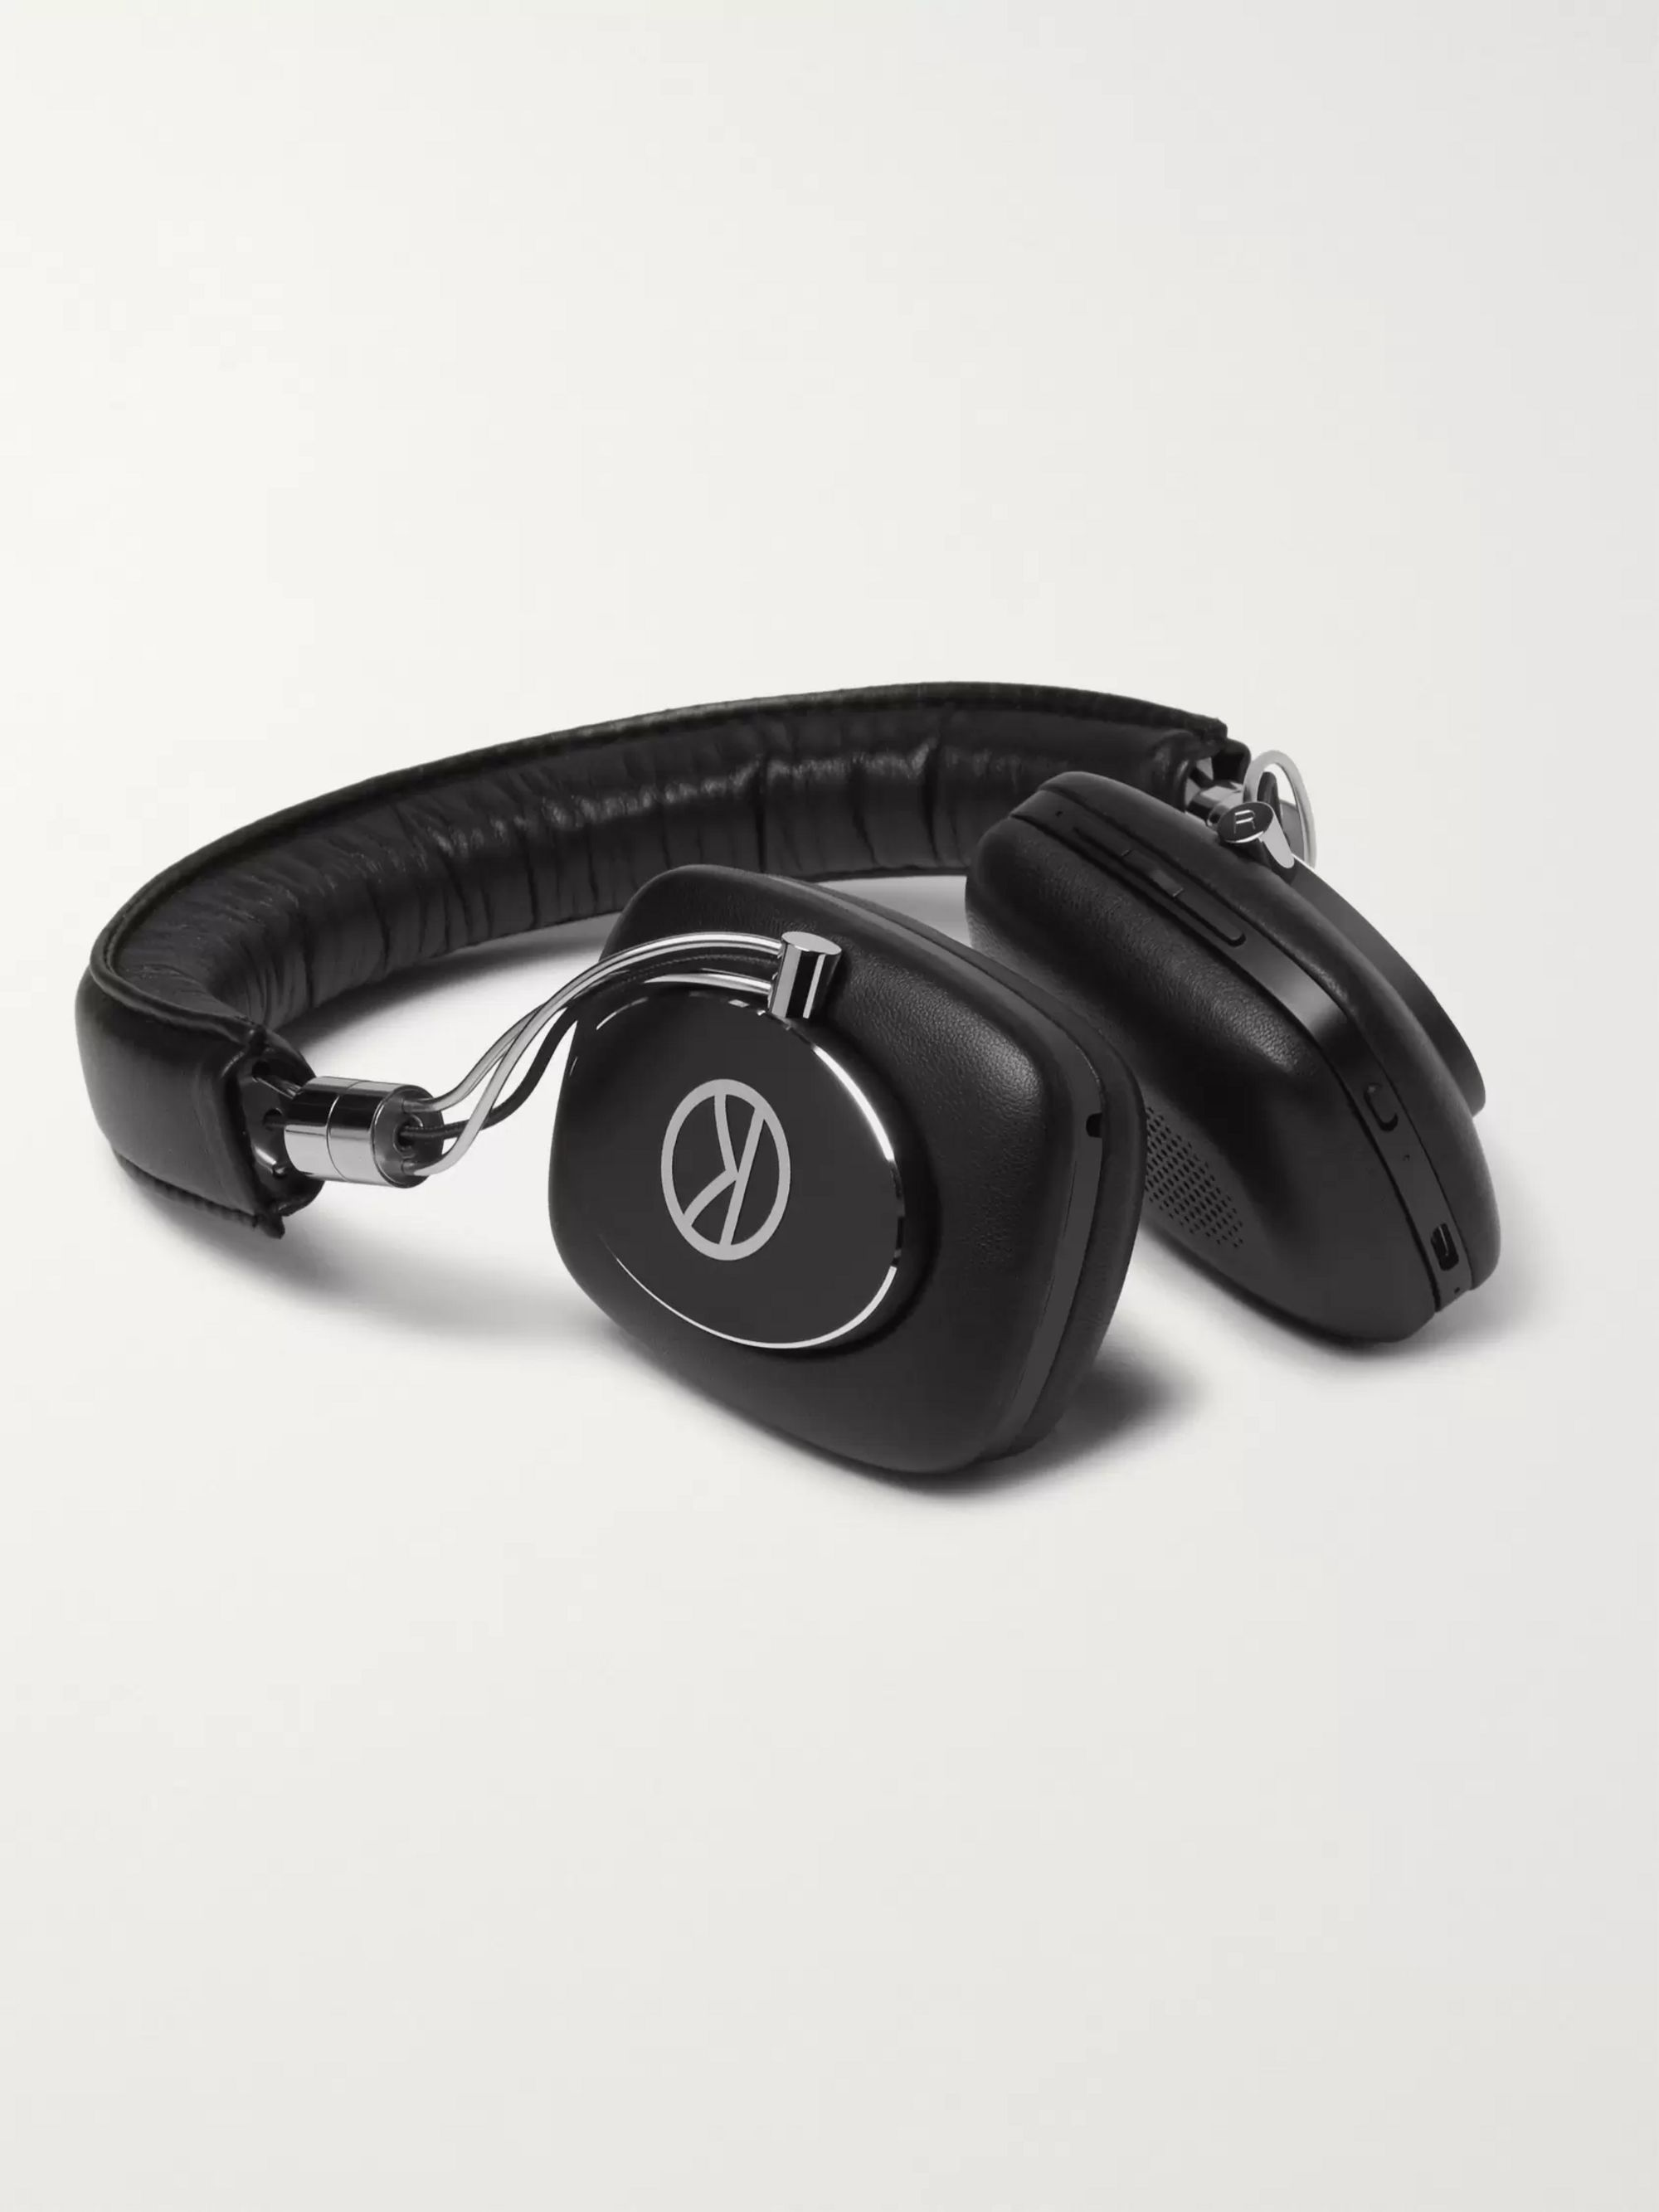 KINGSMAN + Bowers & Wilkins P5W Leather-Covered Wireless Headphones